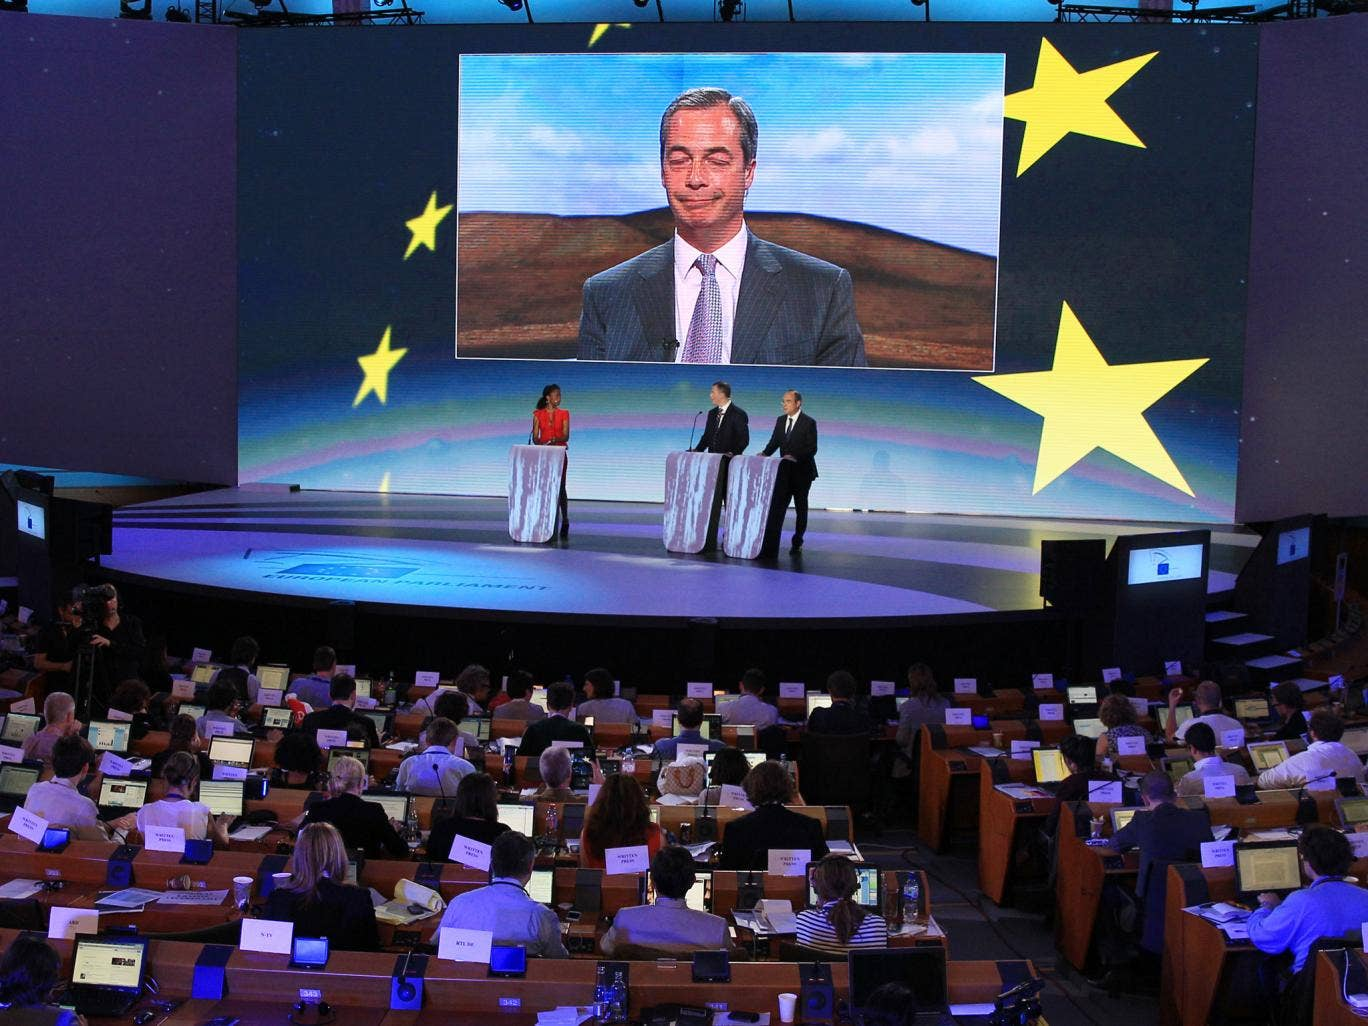 Nigel Farage on a video link at the European Parliament in Brussels